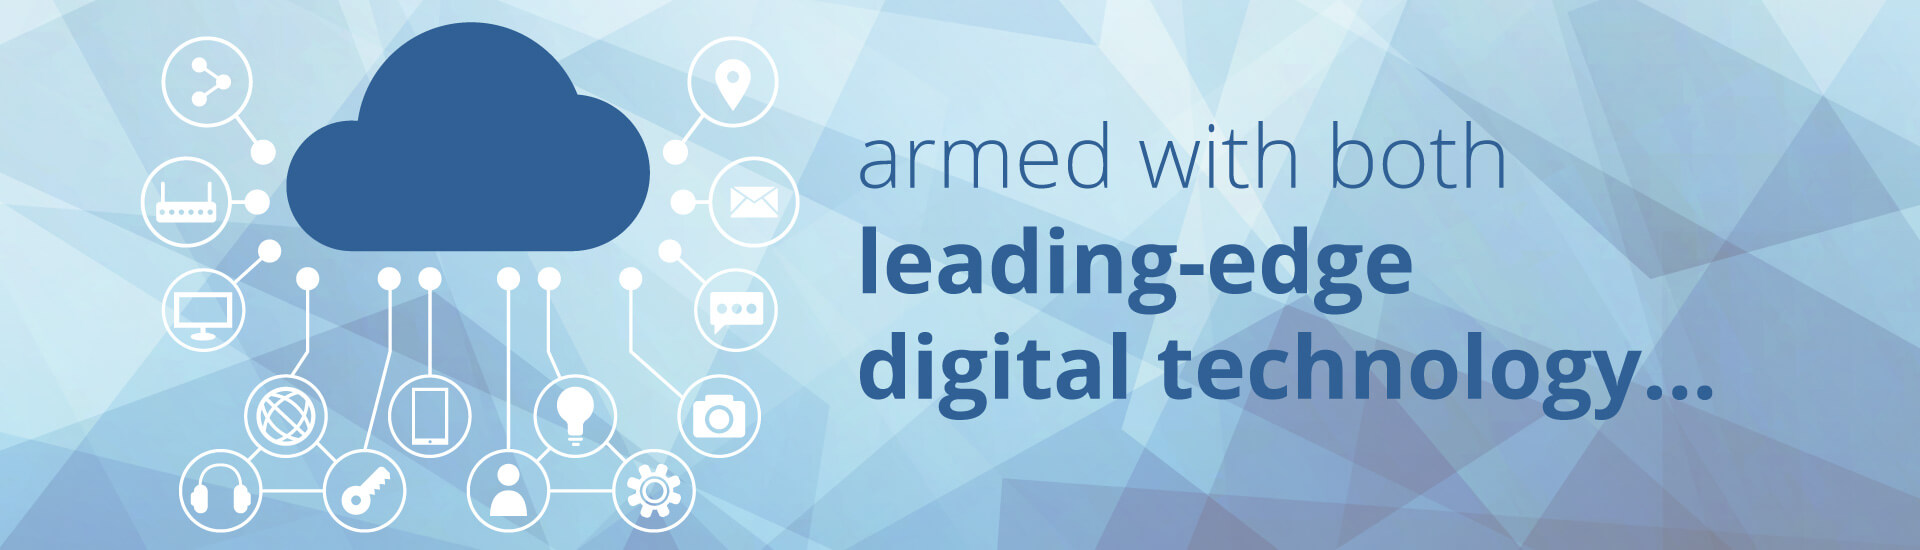 armed with both leading-edge digital technology